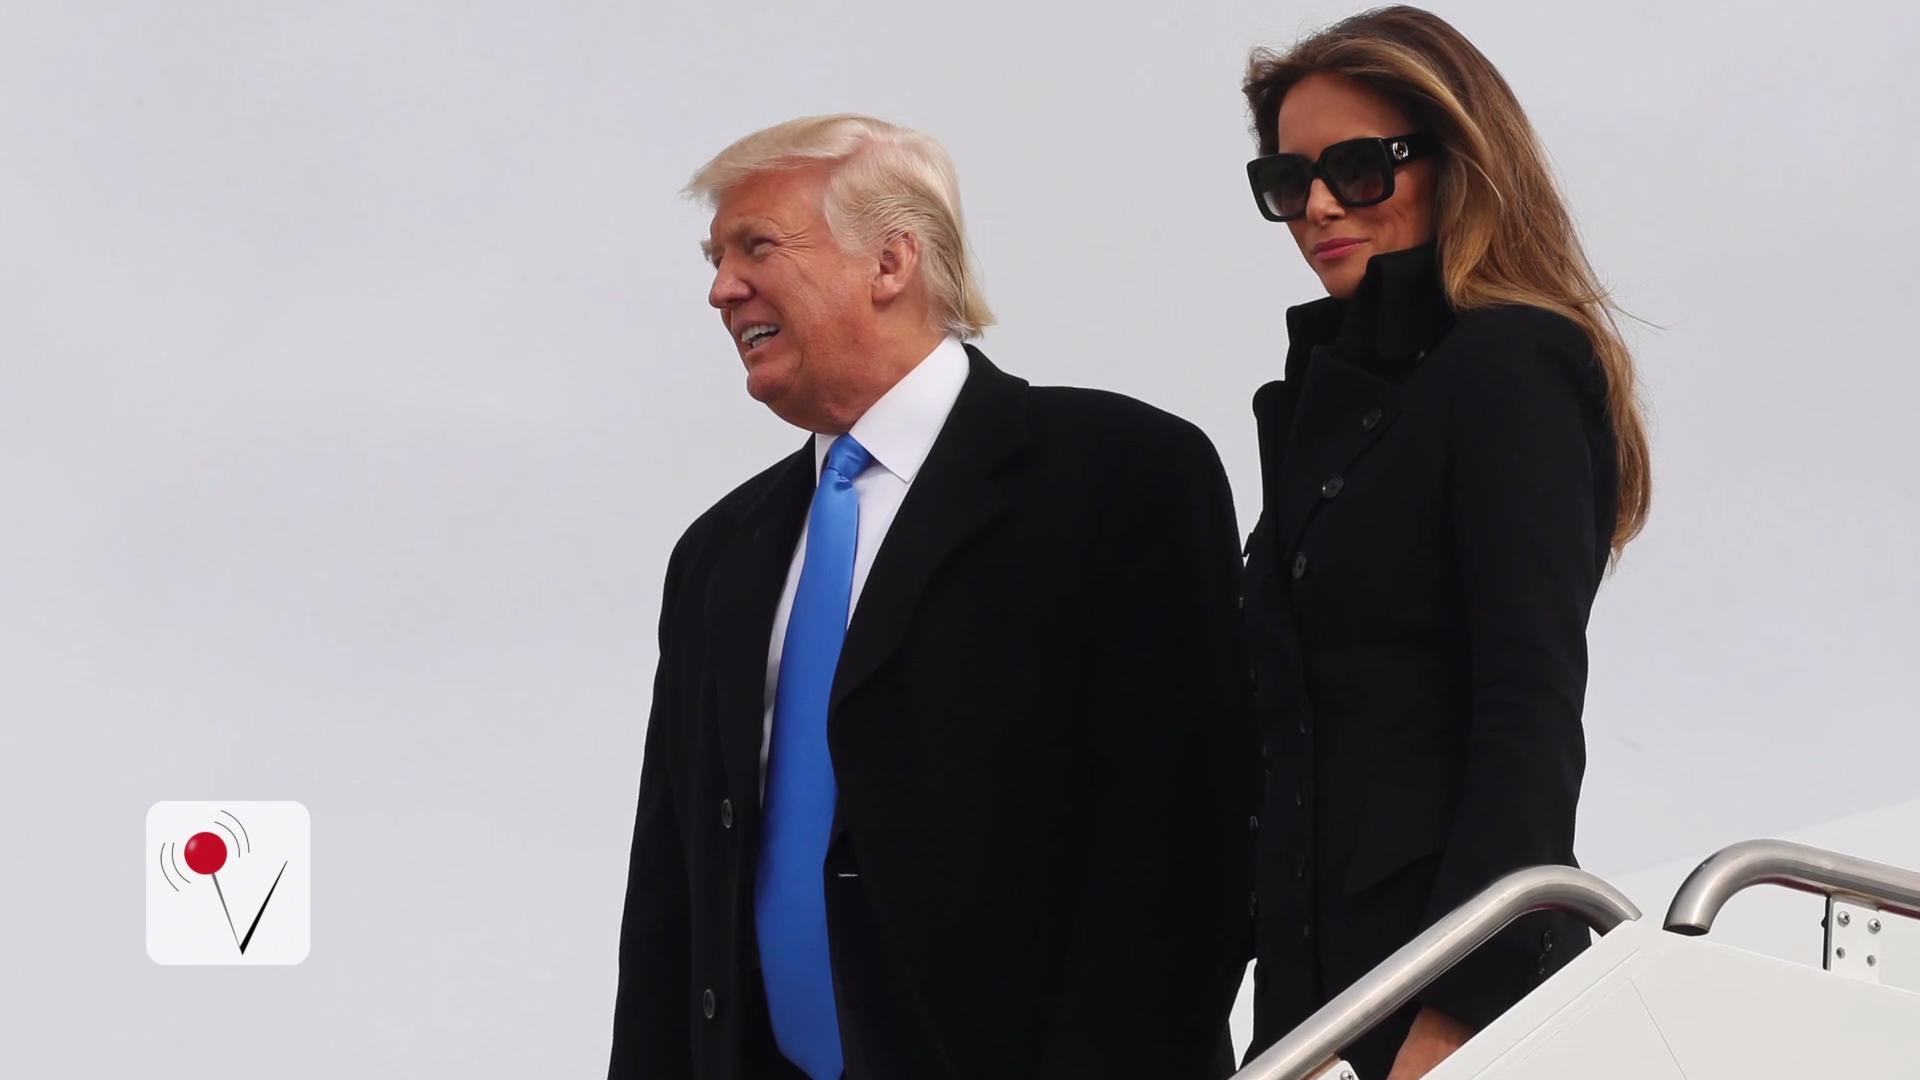 donald trump essay on immigration Over the last few months, billionaire businessman donald trump has taken the political world by storm after rising to the position of the republican frontrunner for.